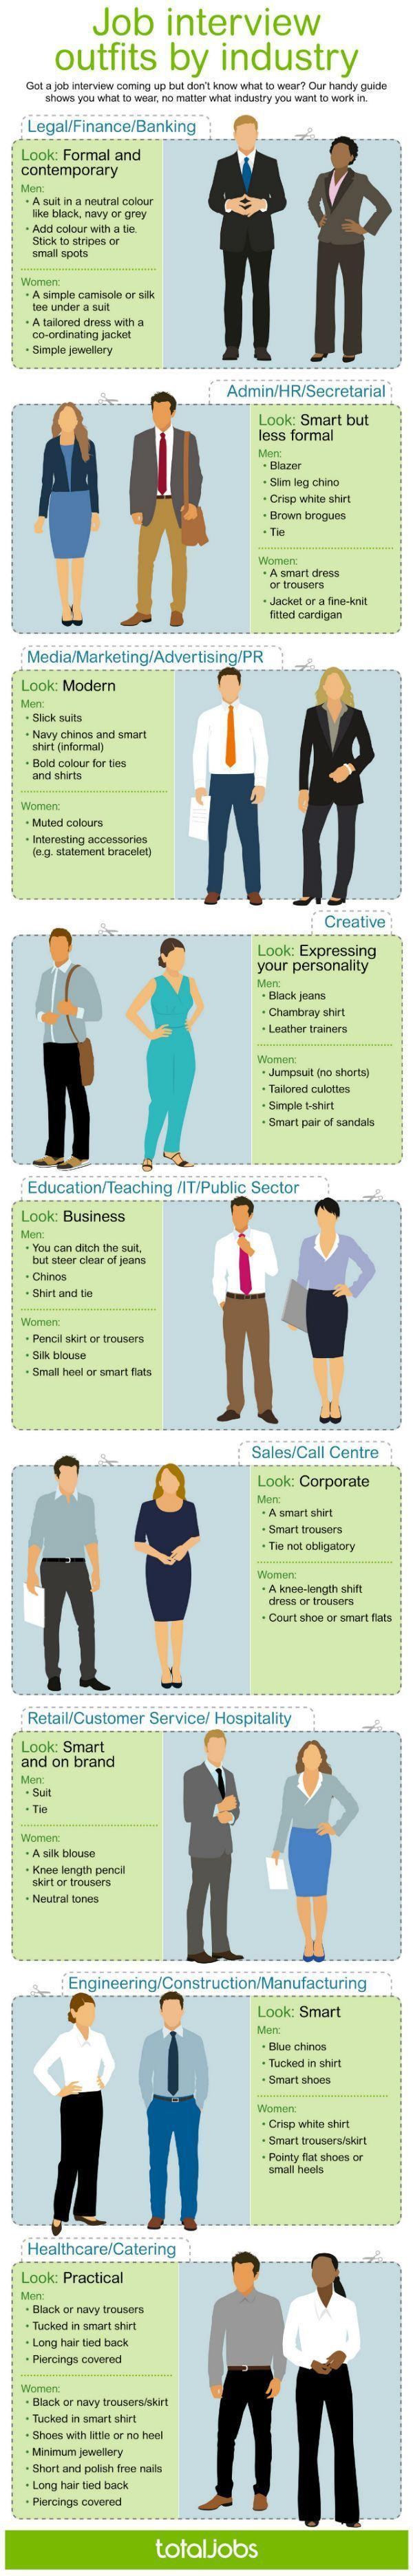 infographic : Your job interview outfits sussed  Inside Job